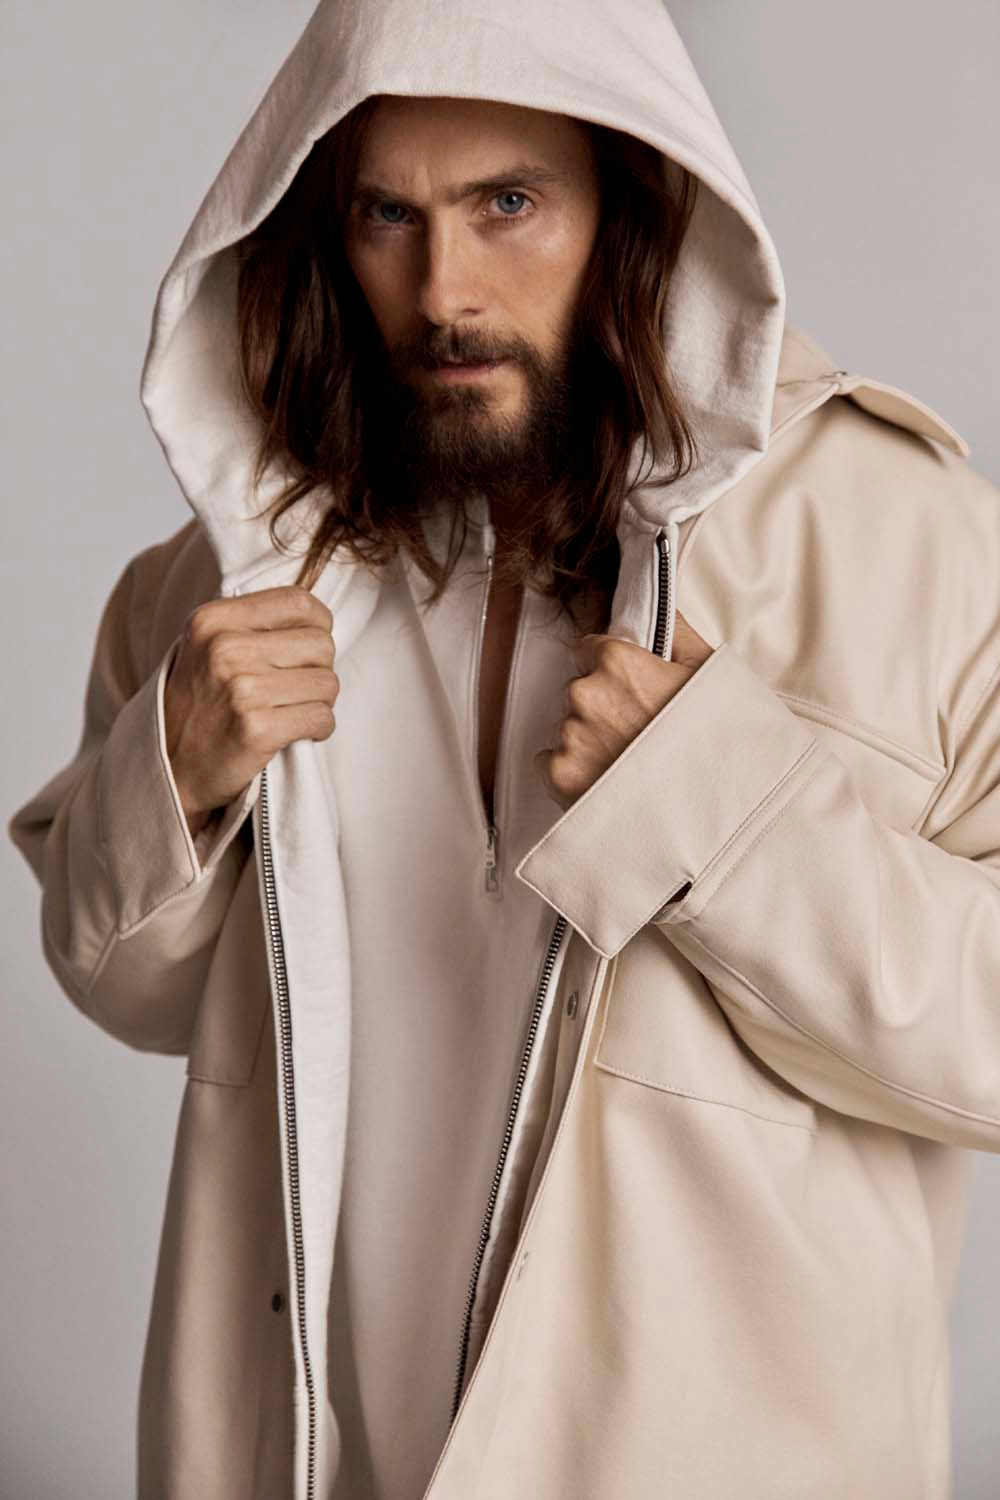 https_%2F%2Fhypebeast.com%2Fimage%2F2018%2F09%2Ffear-of-god-6-sixth-collection-jared-leto-nike-47.jpg